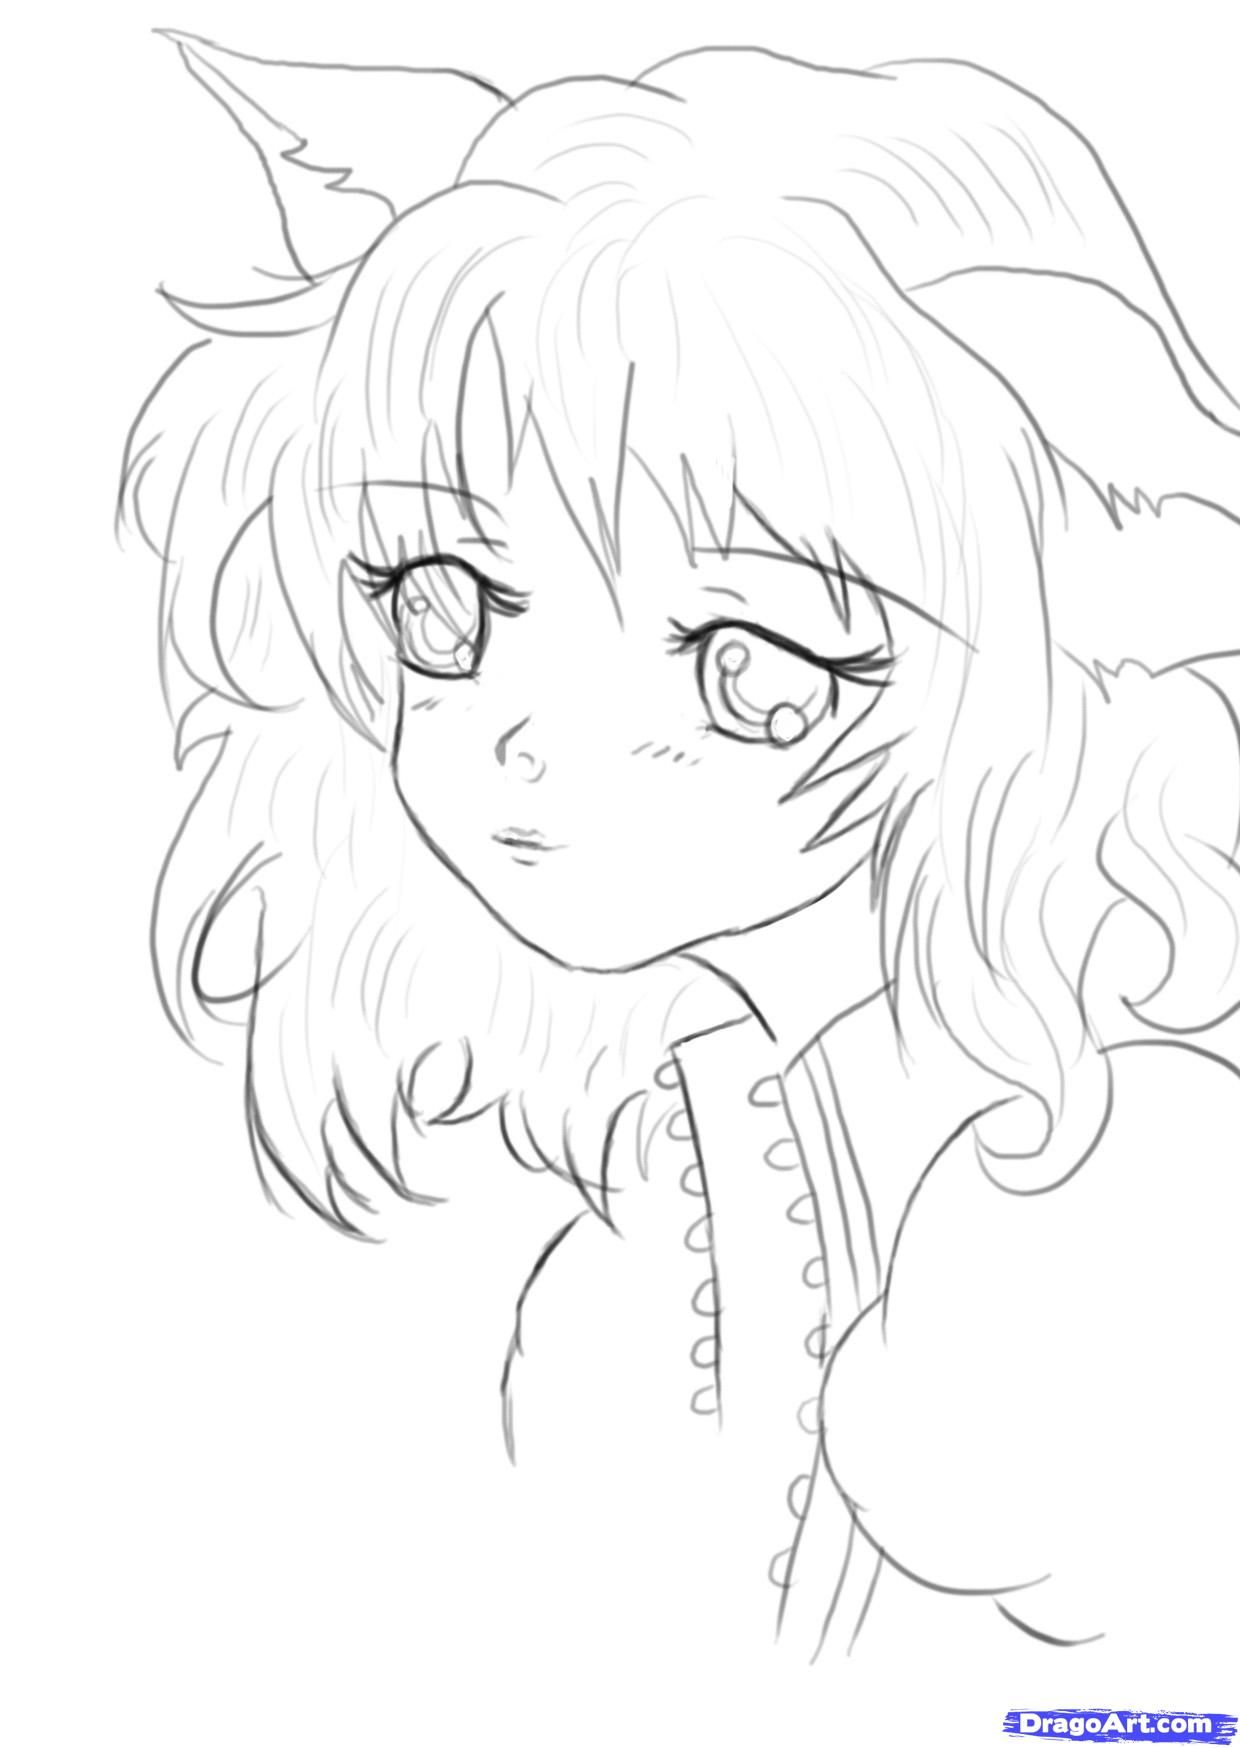 how to draw cute anime anime girl easy drawing at paintingvalleycom explore to anime how draw cute